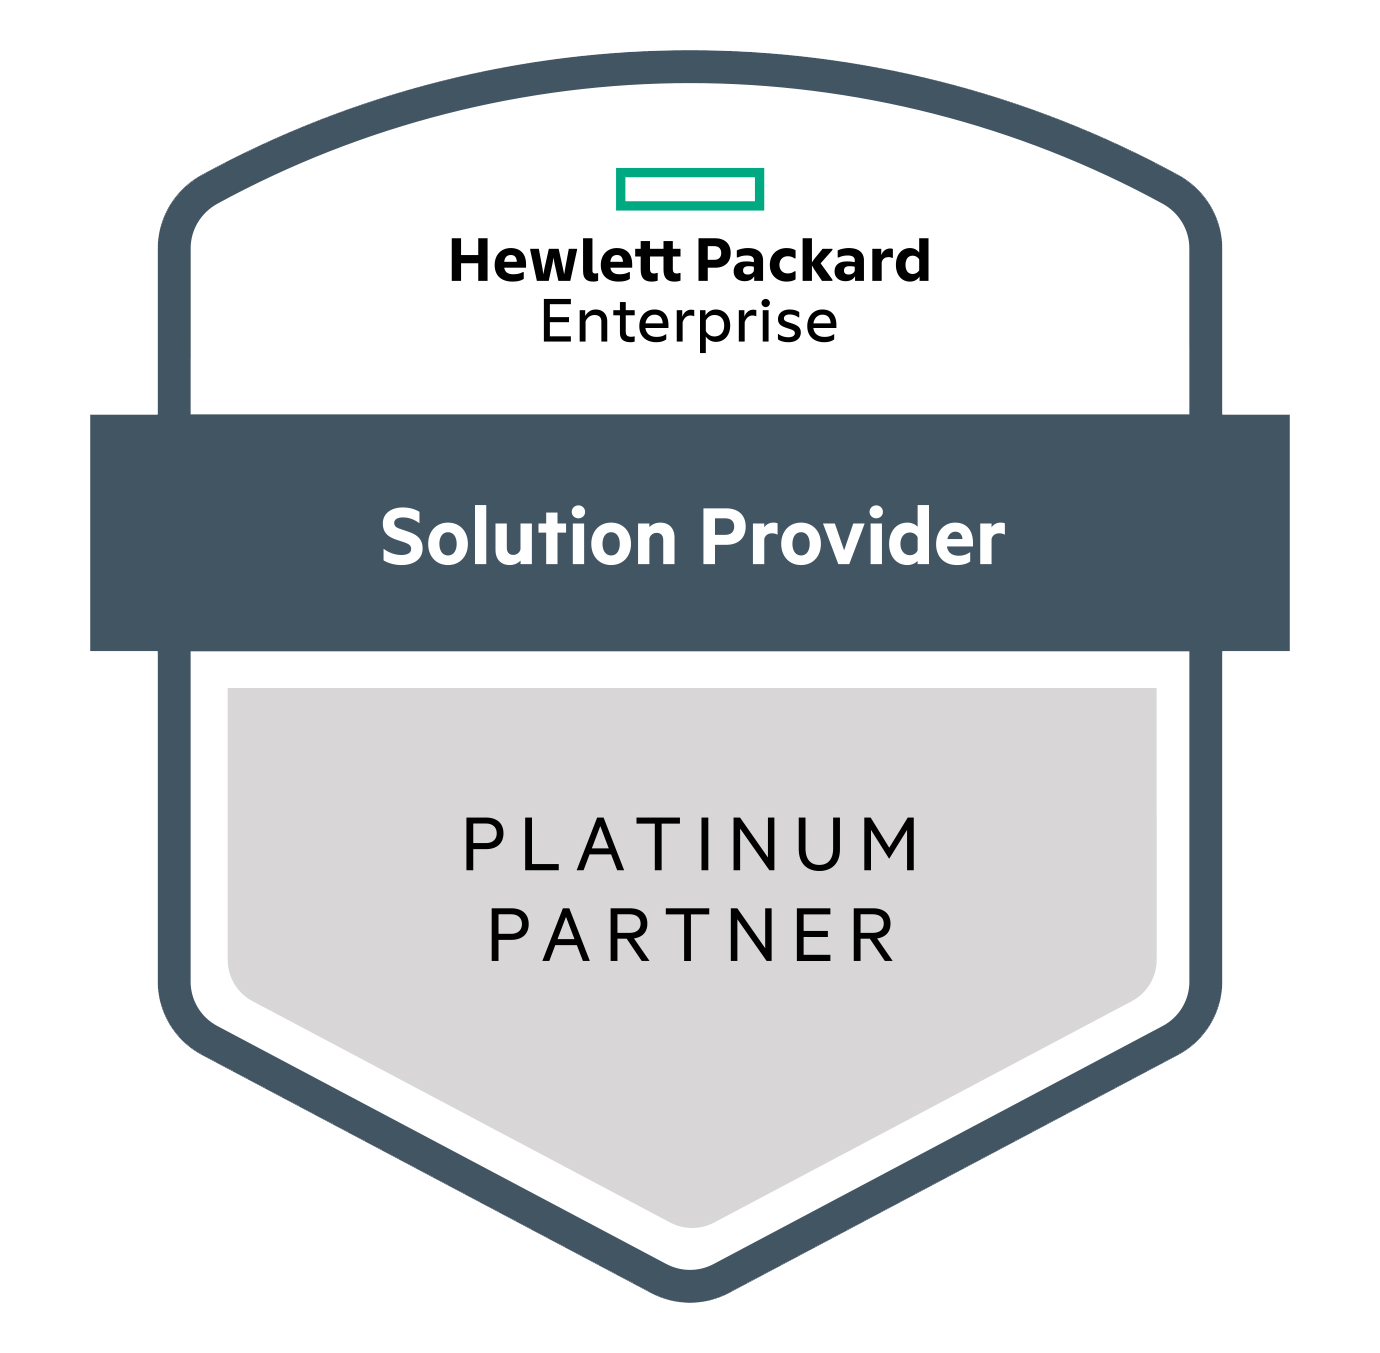 hpe solutions partner logotype